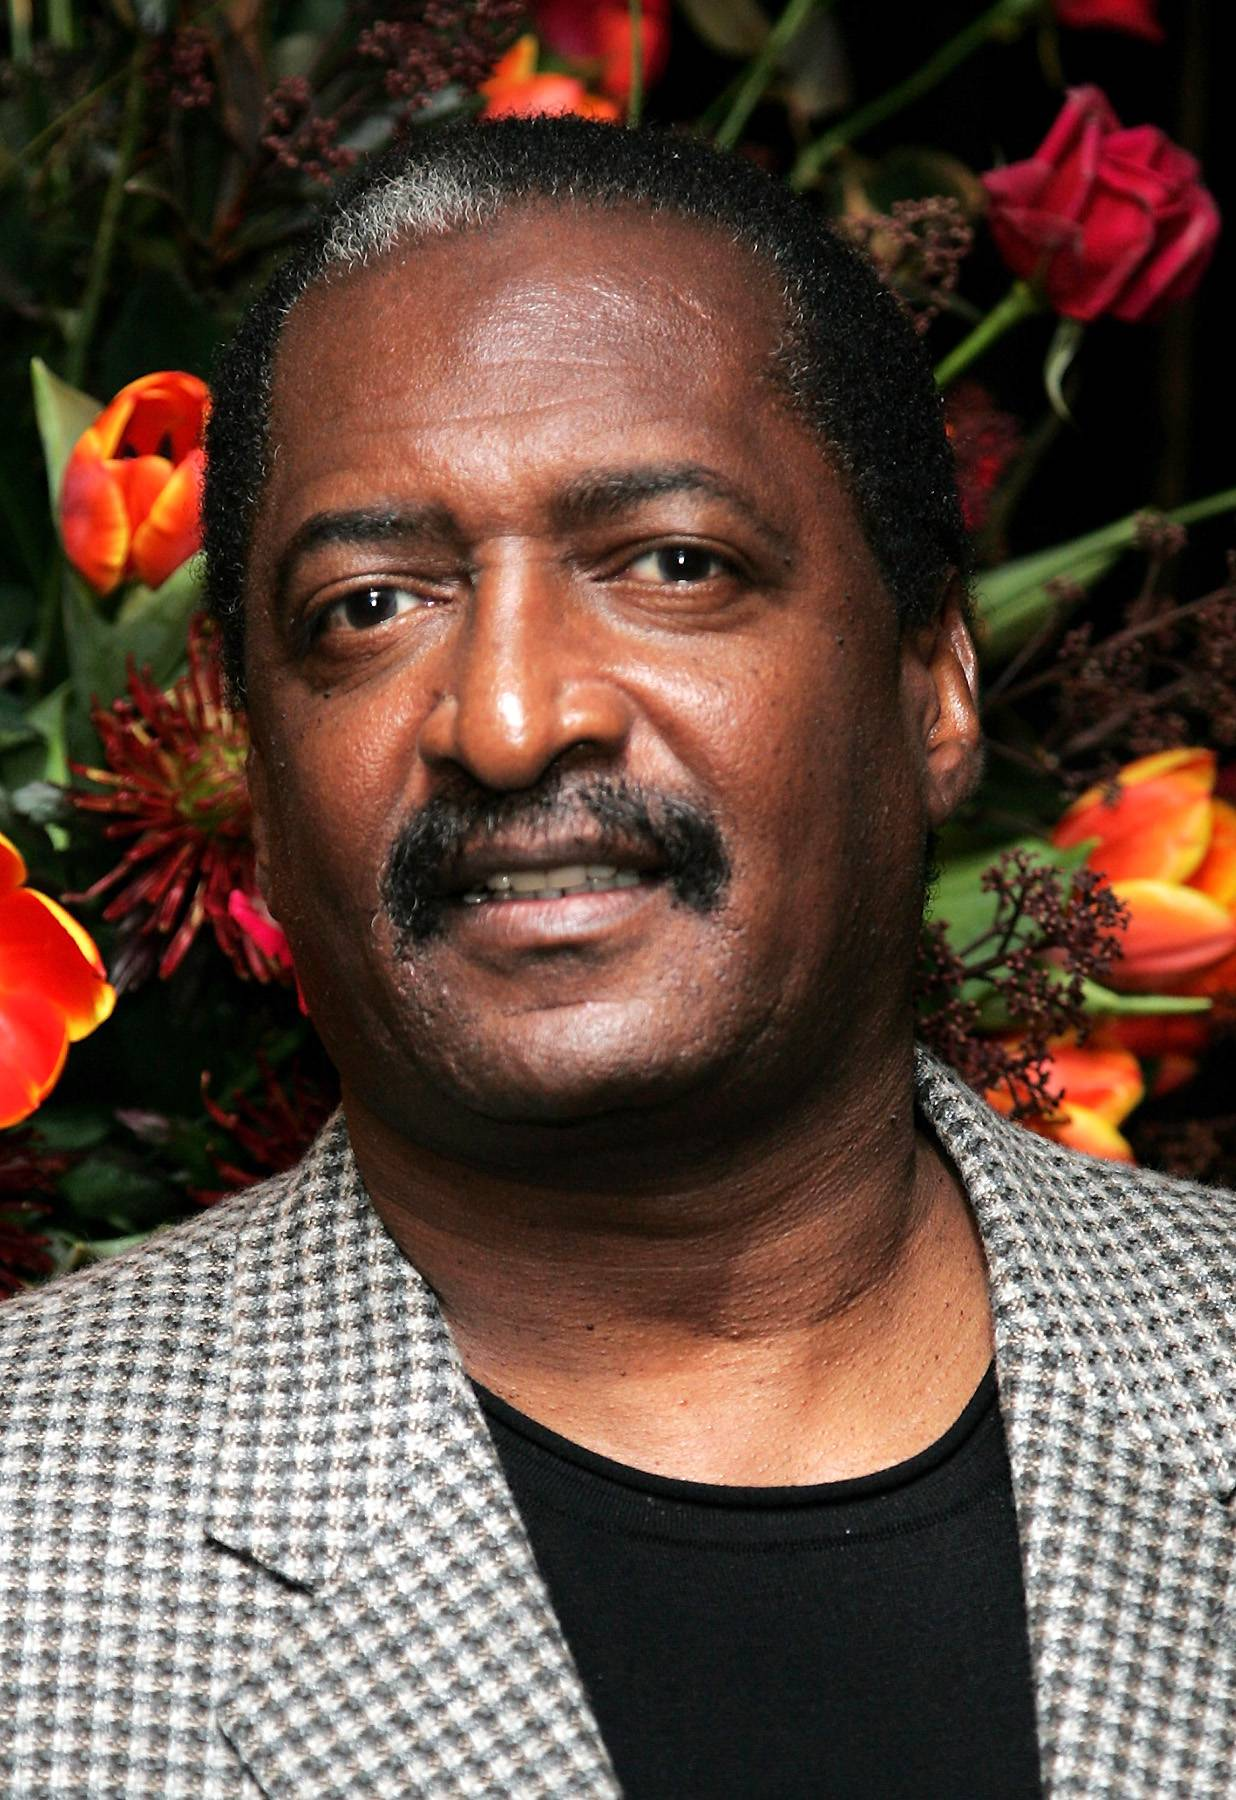 Mathew Knowles - Top dad-a-ger Mathew Knowles took the careers of Destiny's Child and his daugher Beyonc? to record-breaking heights of commercial success.   (Photo: Claire Greenway/Getty Images)